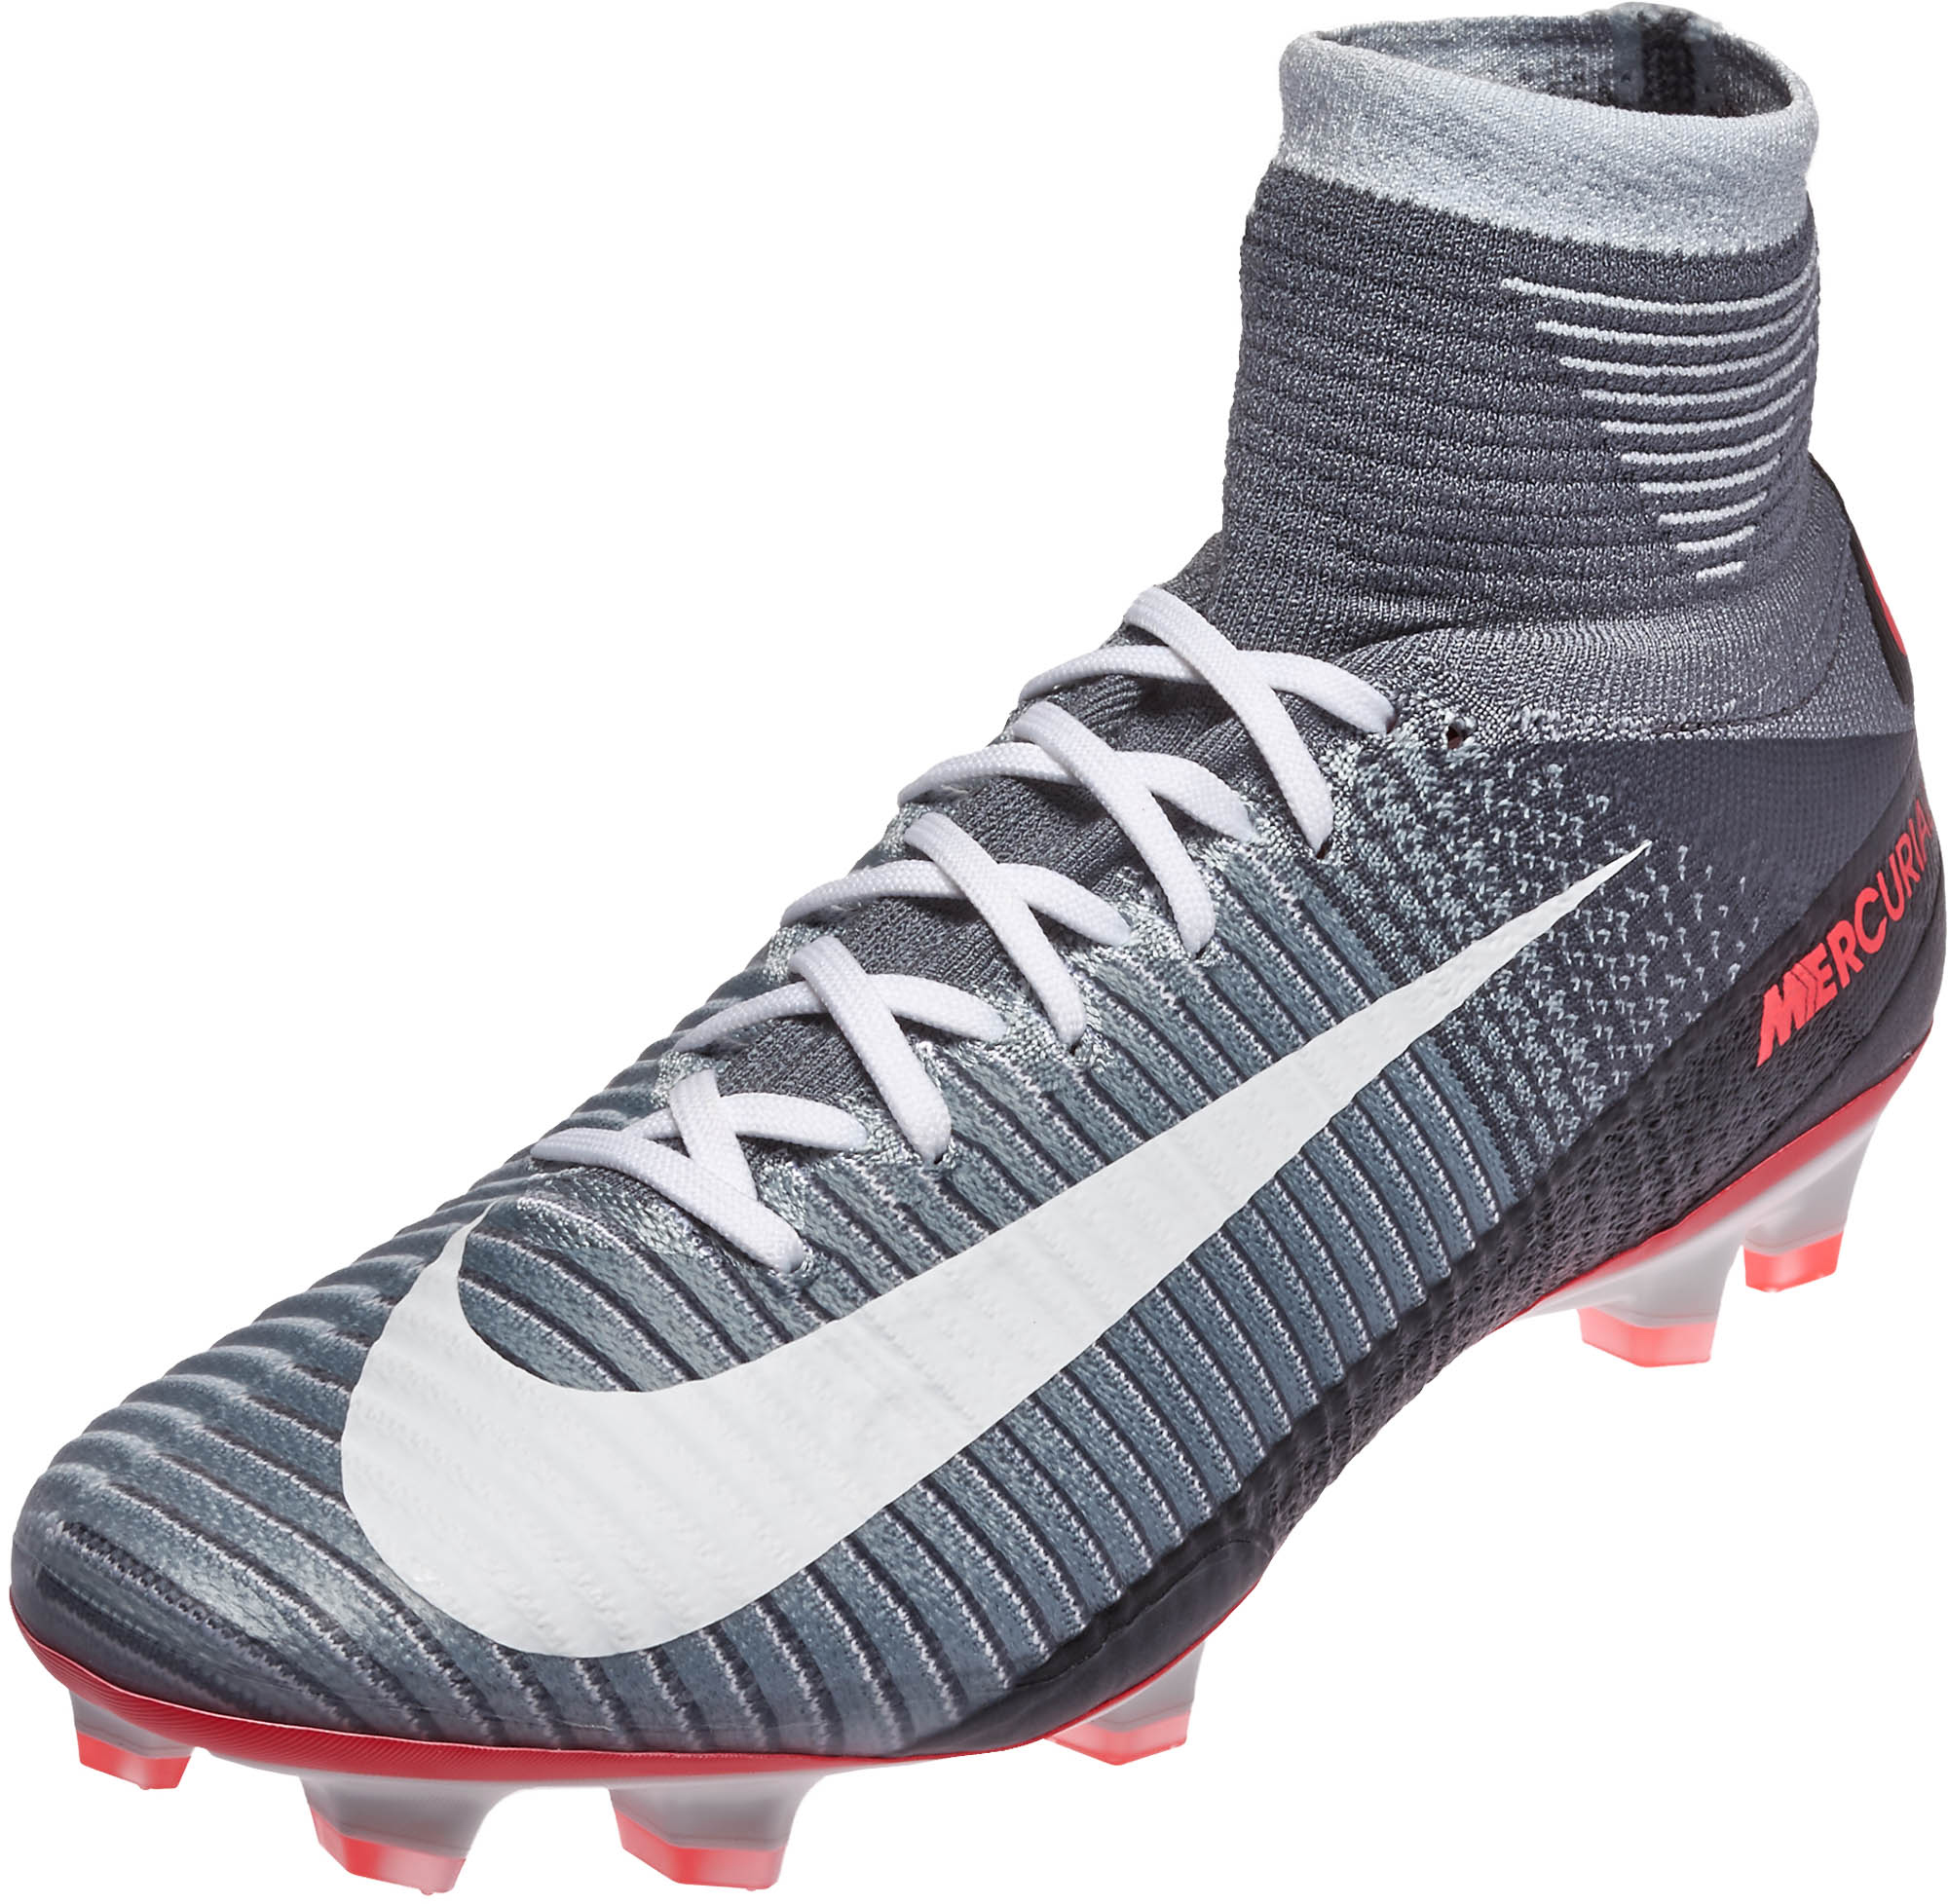 30df1a5279f8 Nike Mercurial Superfly V FG- Grey Nike Superfly Cleats